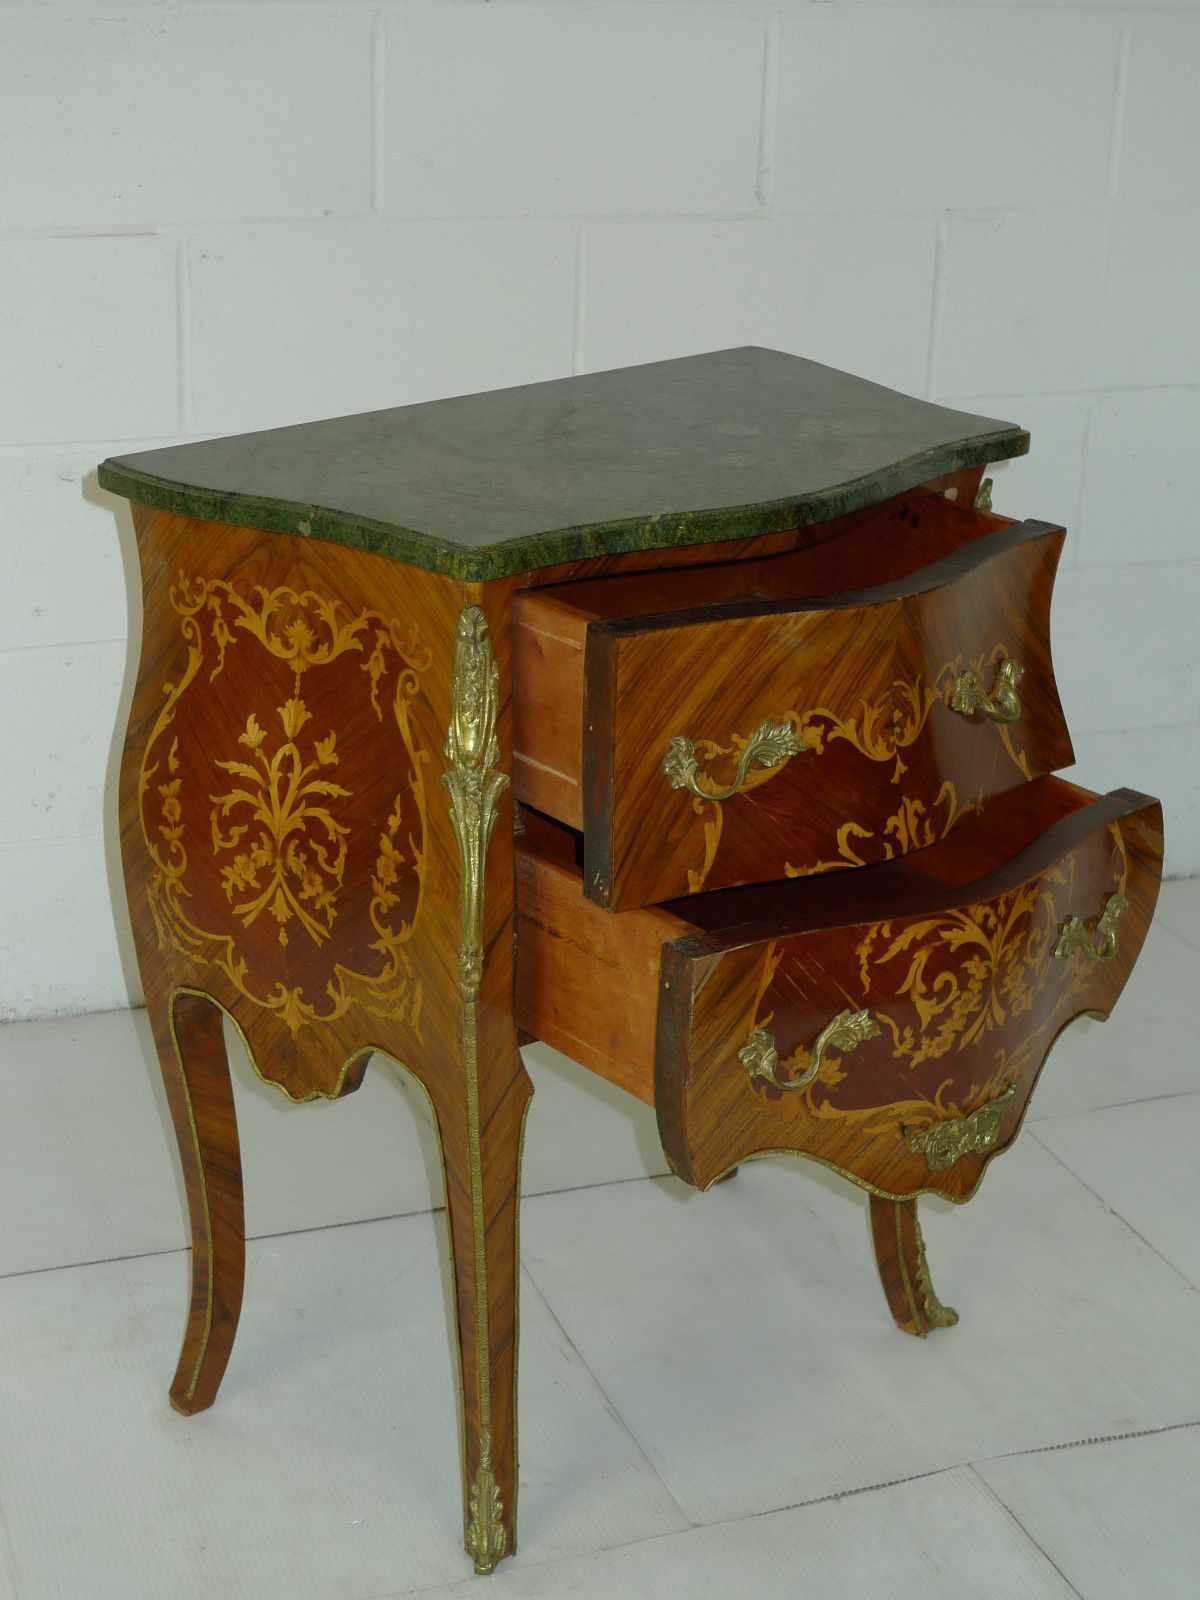 Louis XV Bombe Marquetry Rosewood Commode Ormolu Chests & Trunks